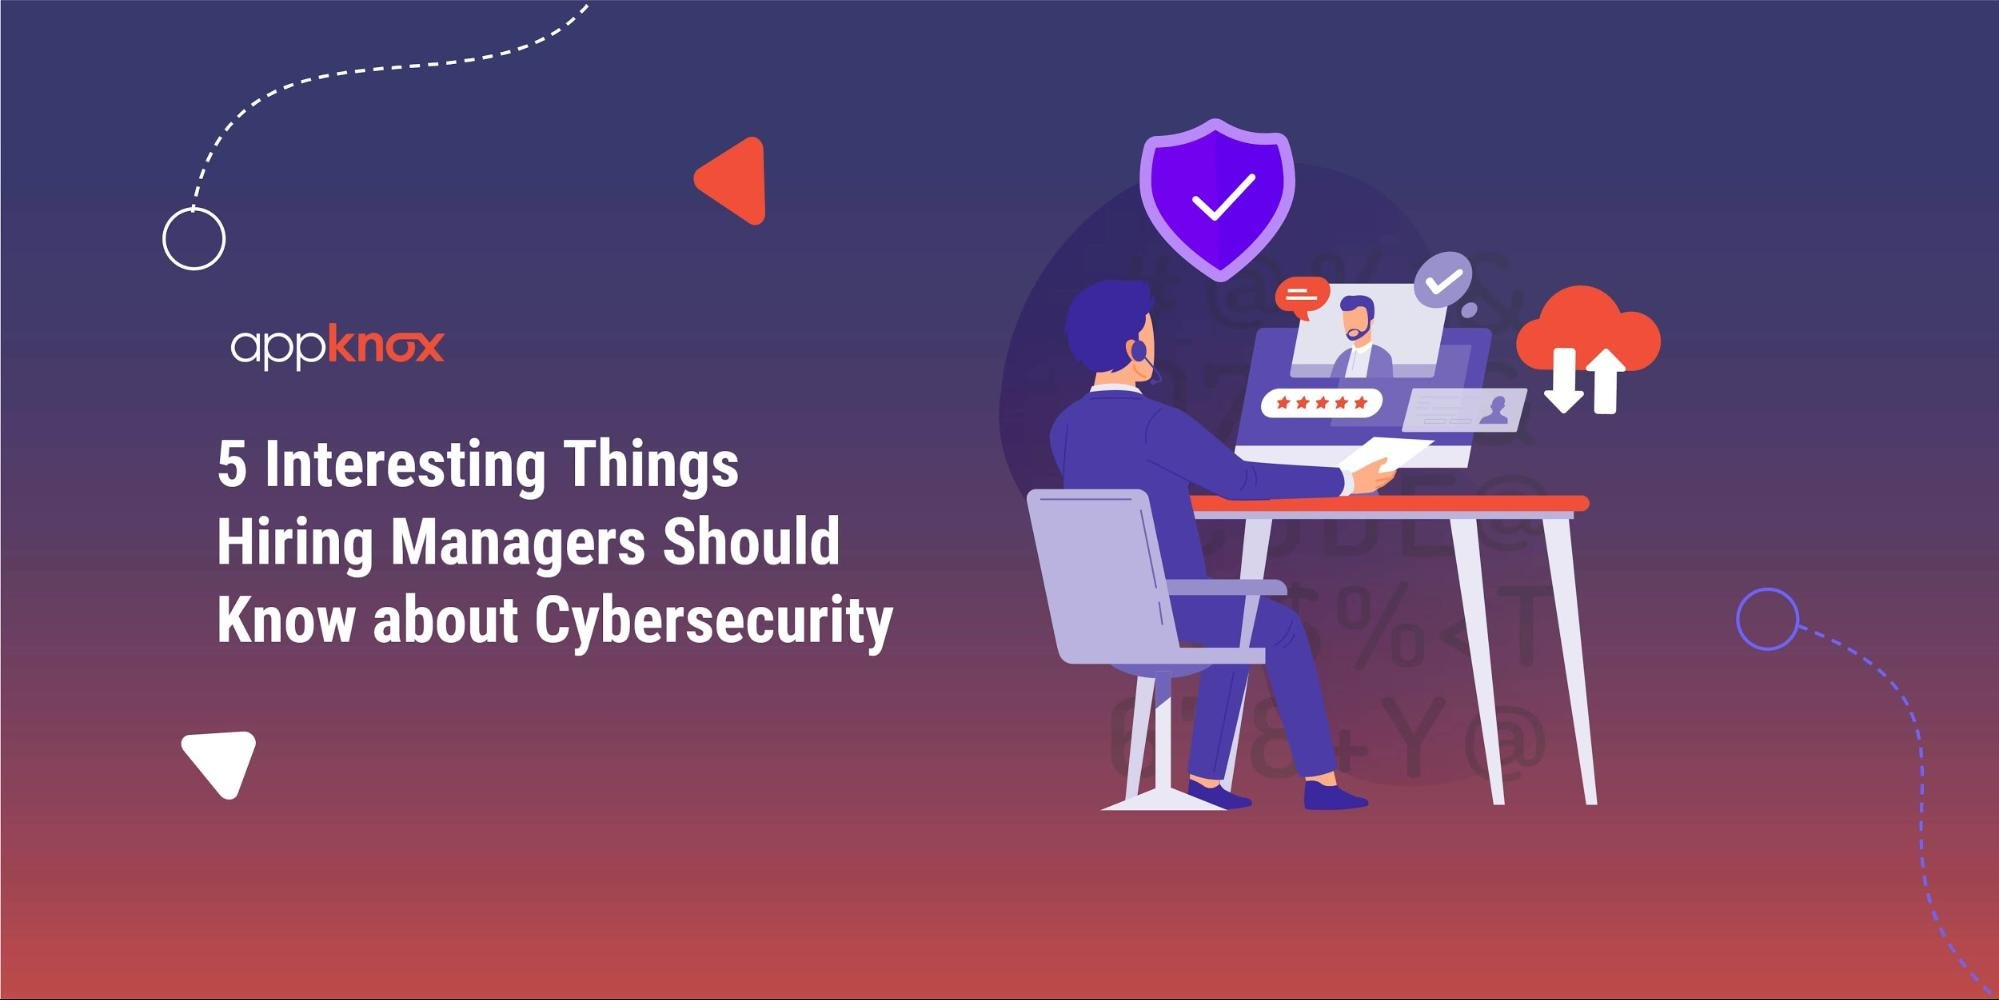 5 Interesting Things Hiring Managers Should Know about Cybersecurity